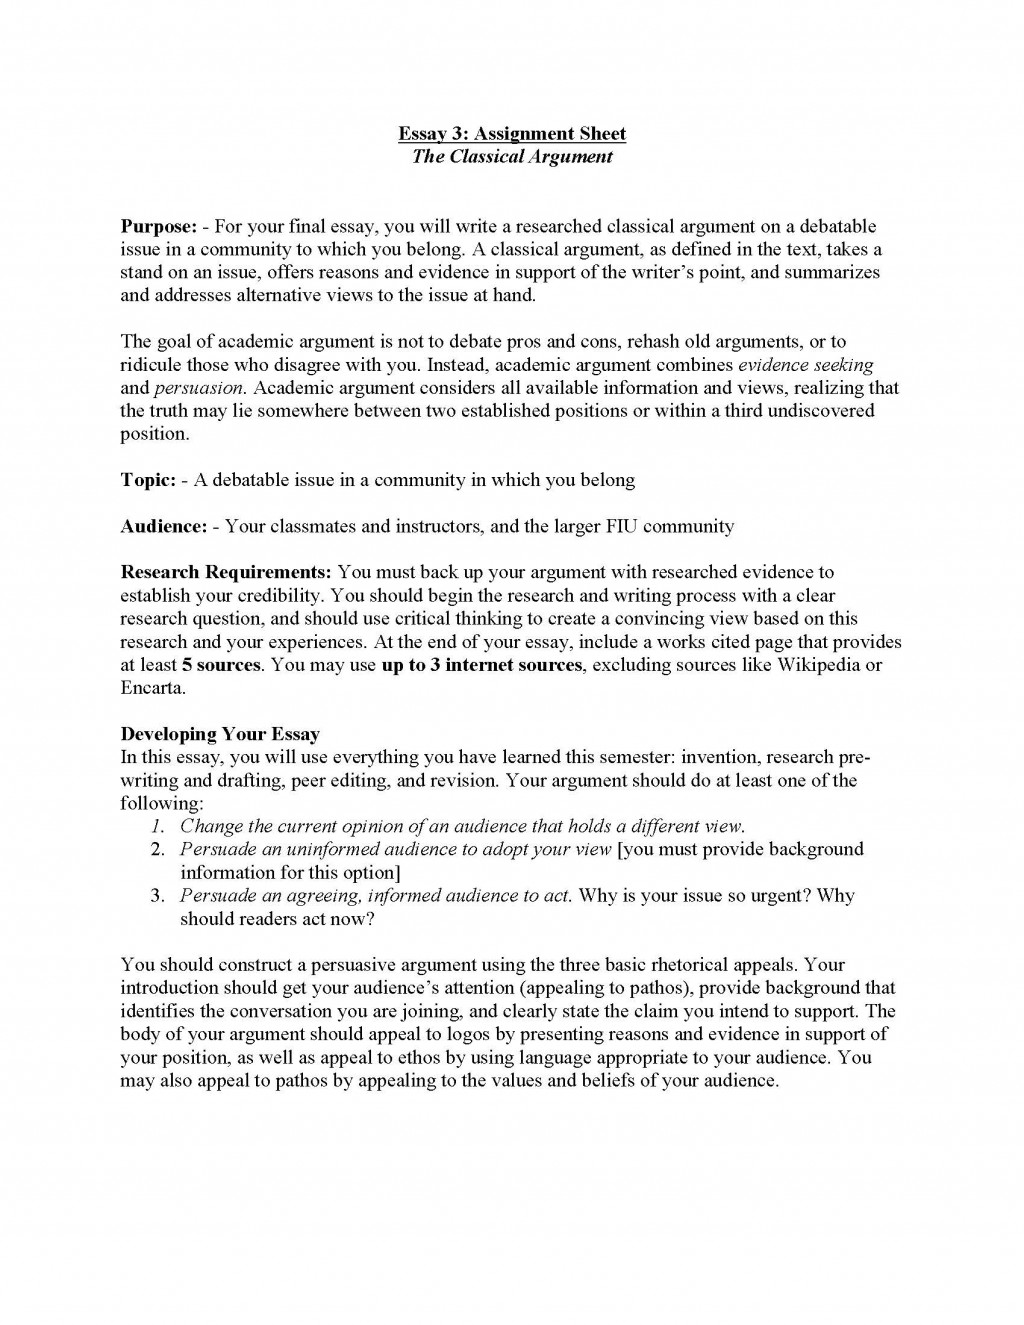 009 Essay Example Rogerian Argument Classical Unit Assignment Page 1 Fascinating Topics Death Penalty On Abortion Large